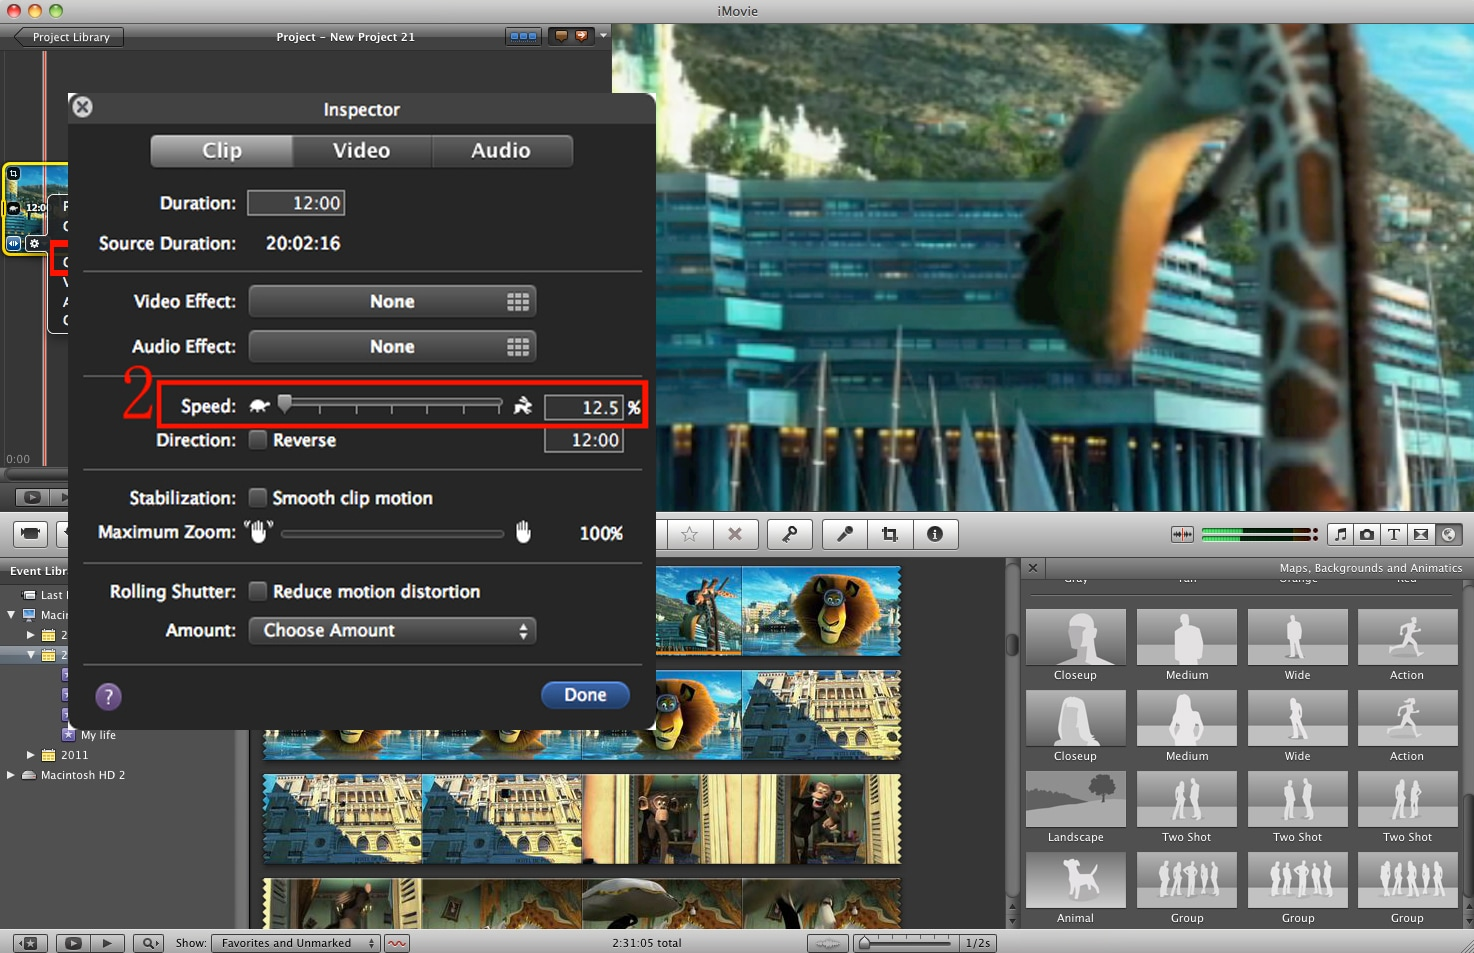 how to make timelapse in imovie